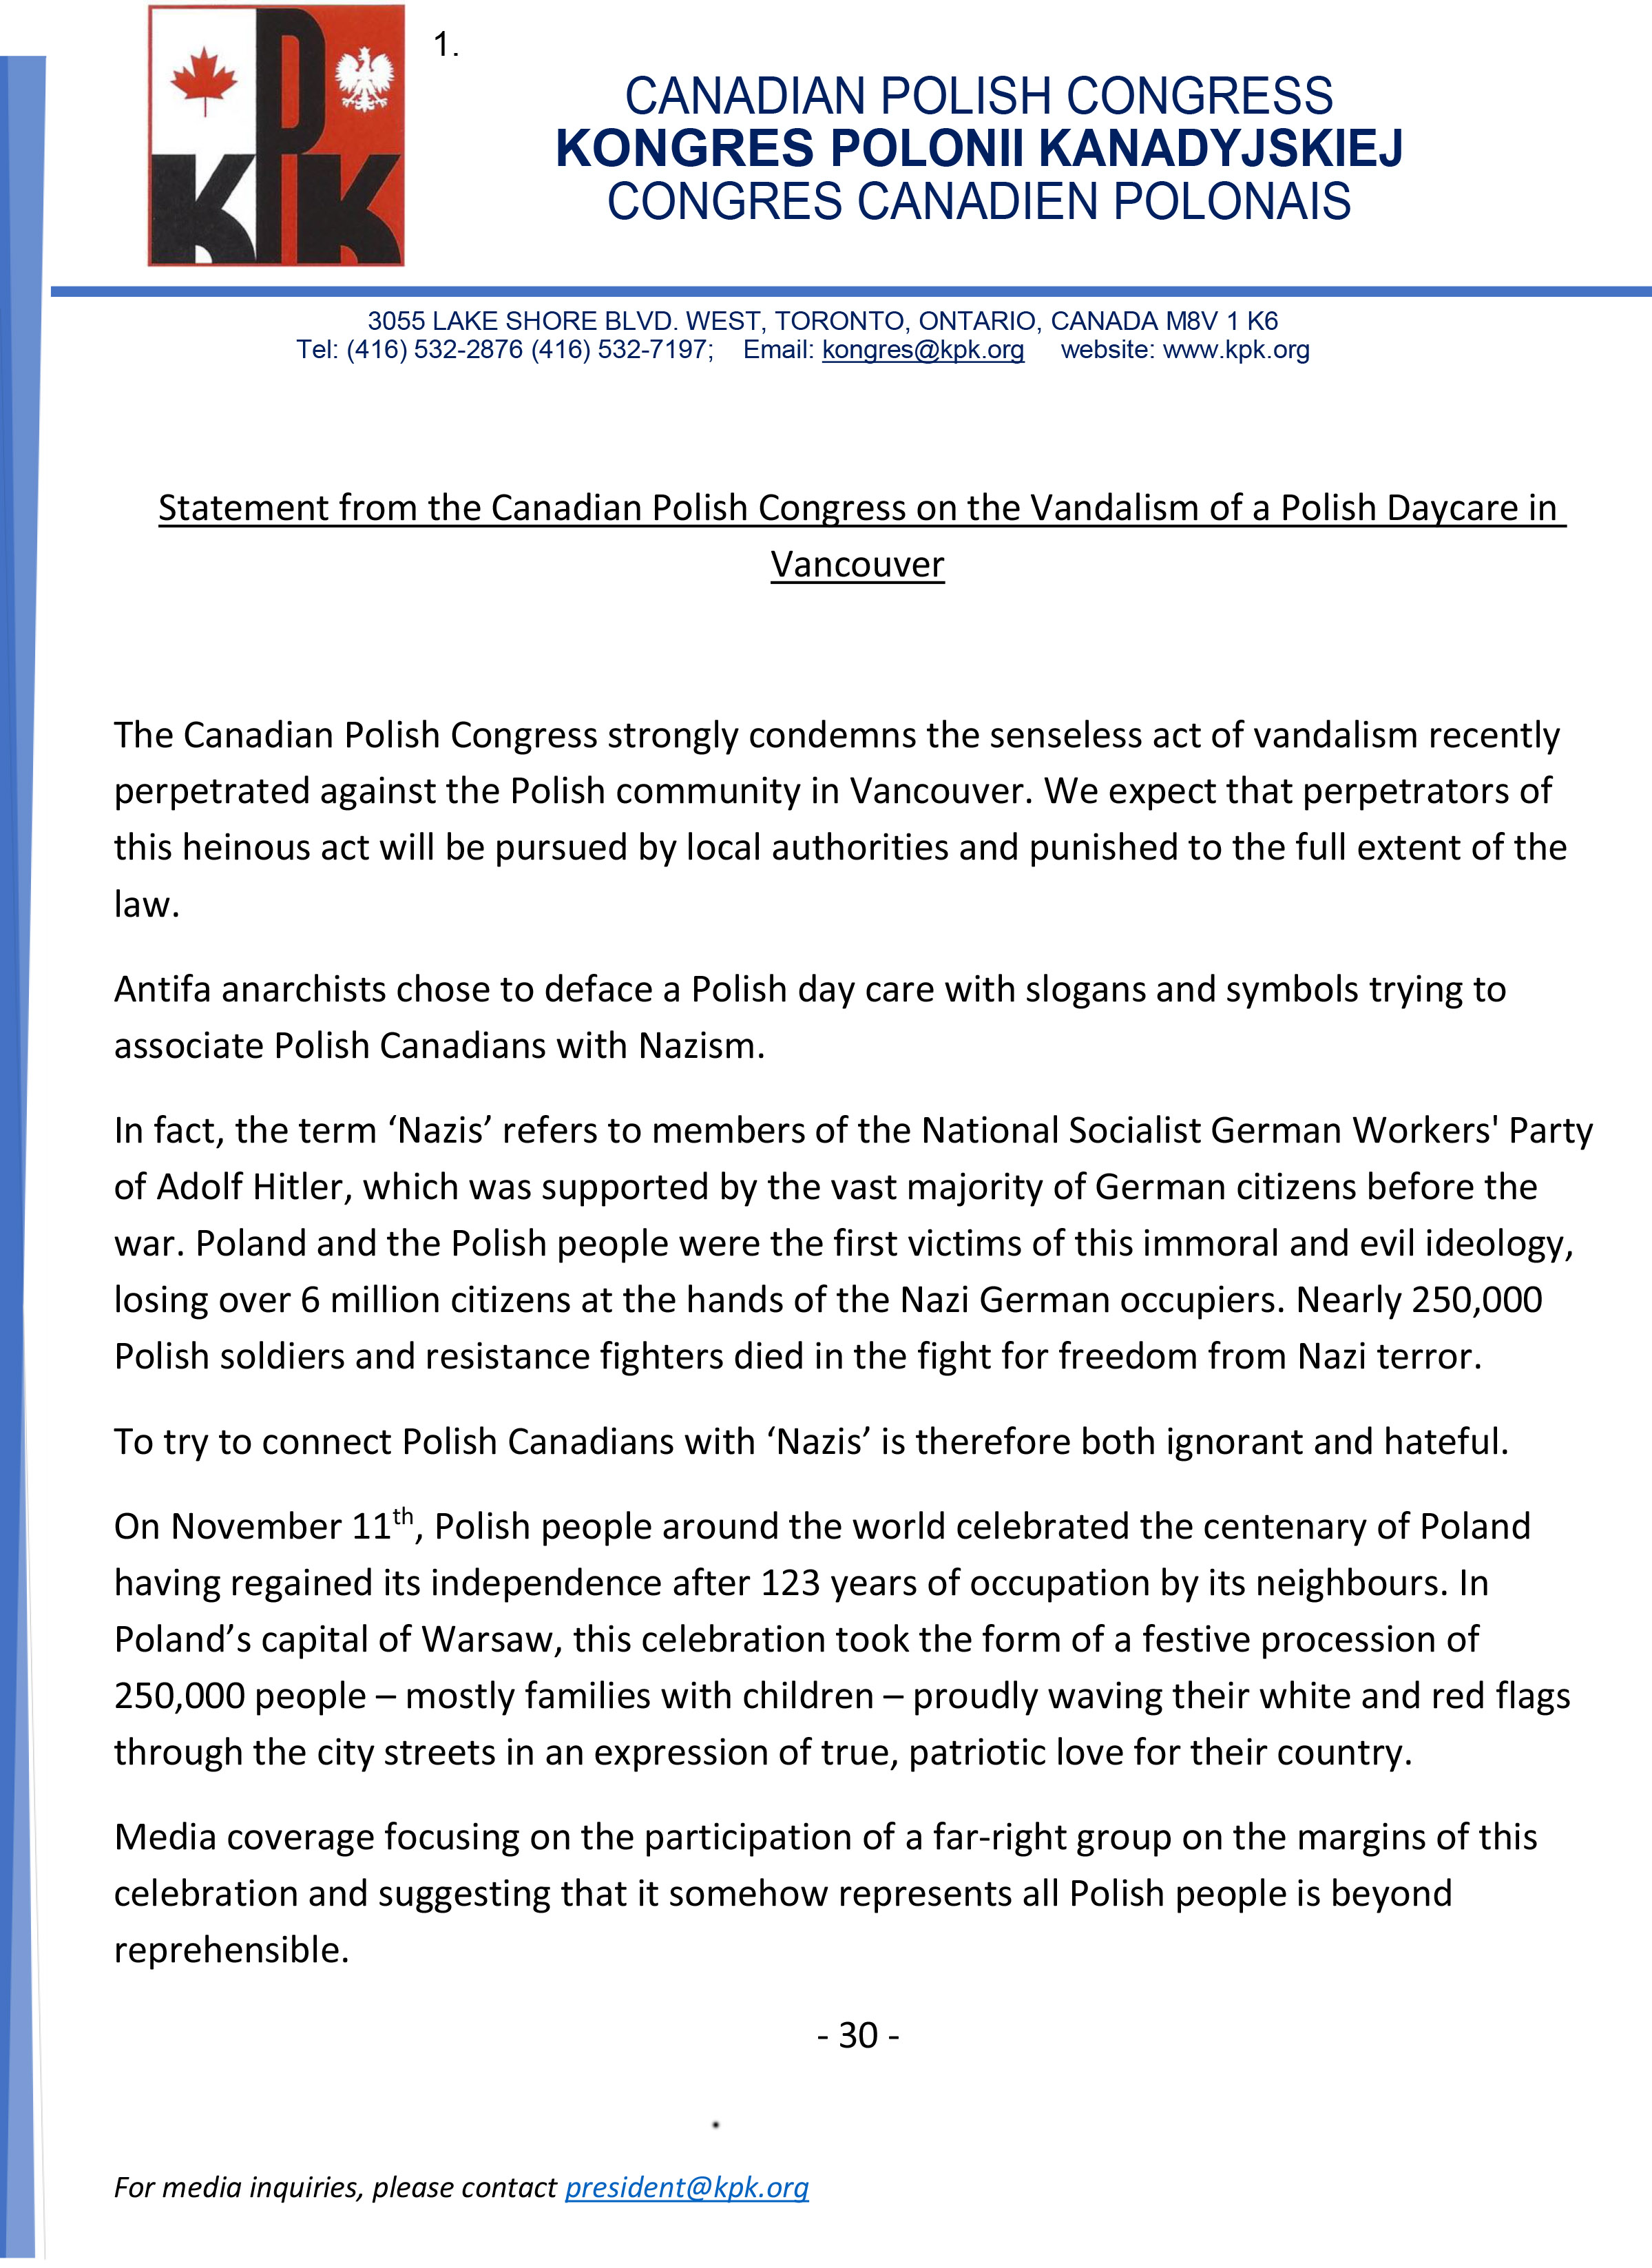 CPC Statement on Vandalism of Polish Daycare in Vancouver